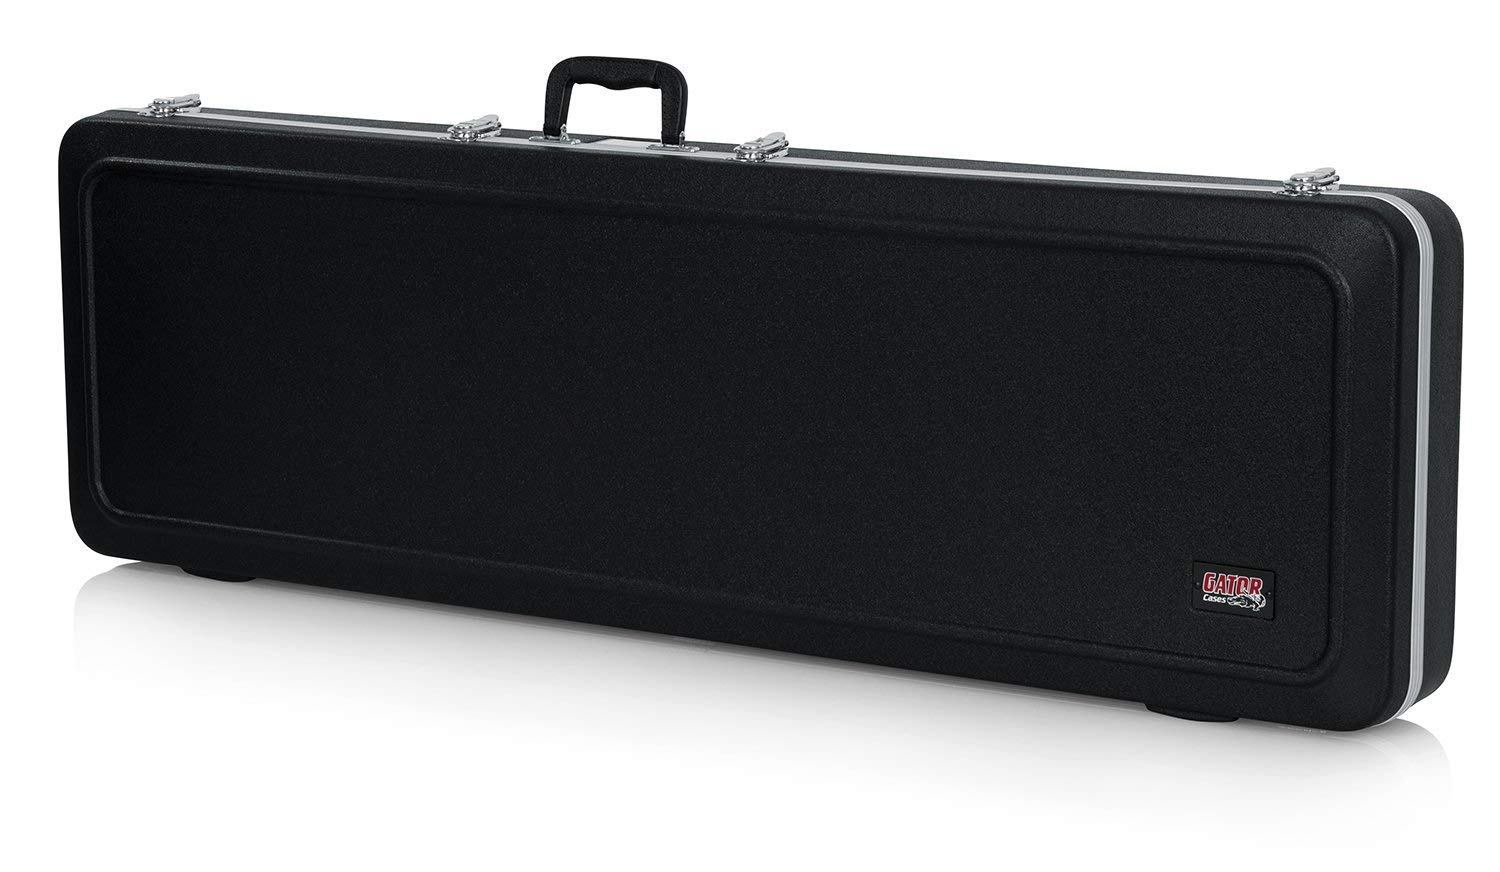 Gator Cases Deluxe ABS Molded Case for Bass Guitars; Fits Precision and Jazz Style Bass Guitars (GC-BASS) (Renewed) by Gator